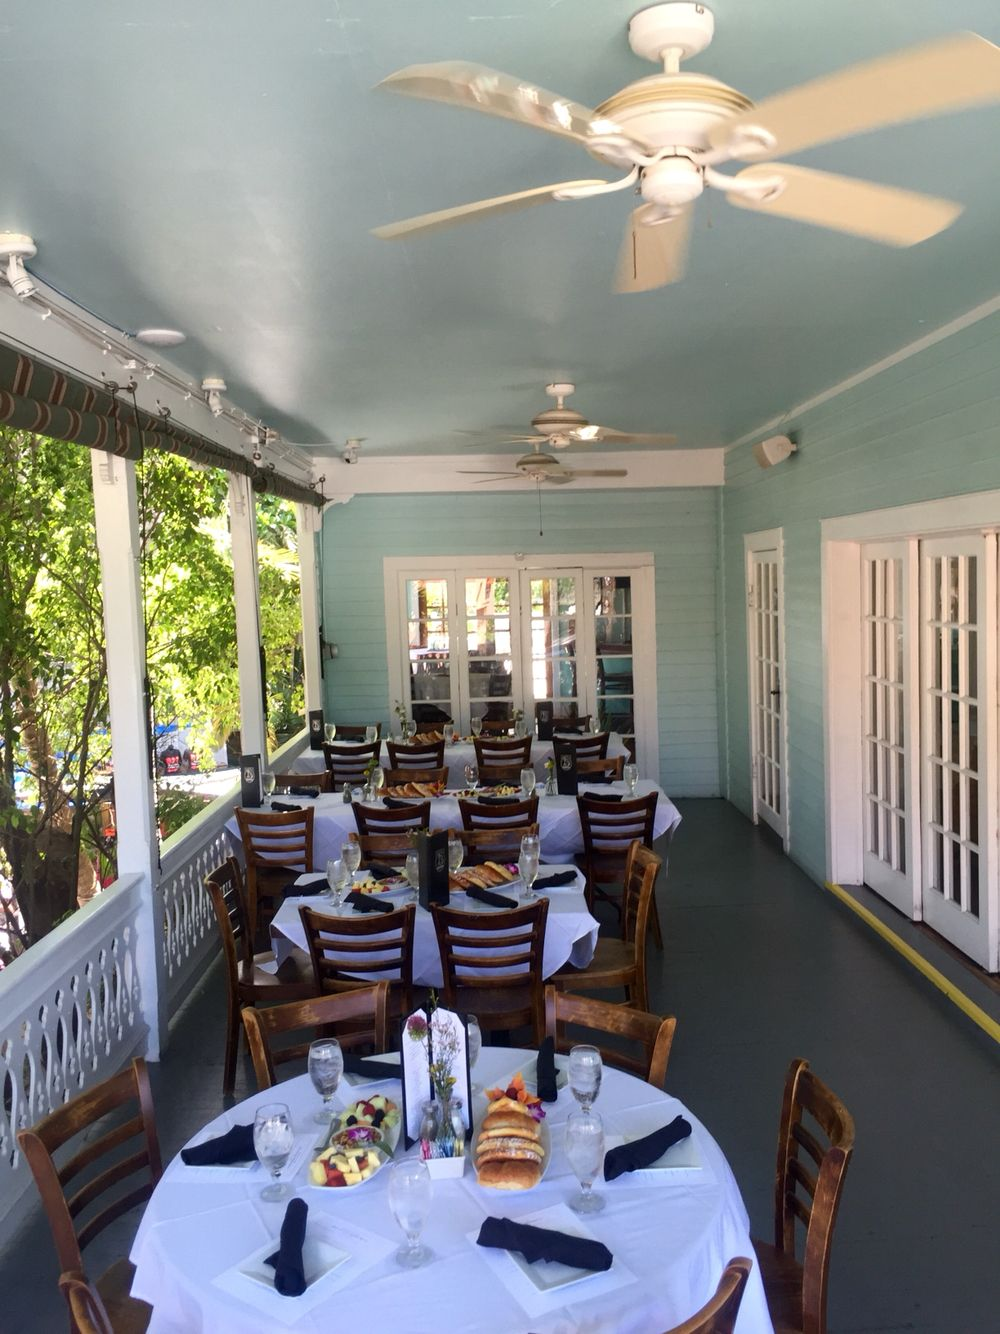 Pre Wedding Brunch For 30 Upstairs Bagatelle Key West Bagatelle